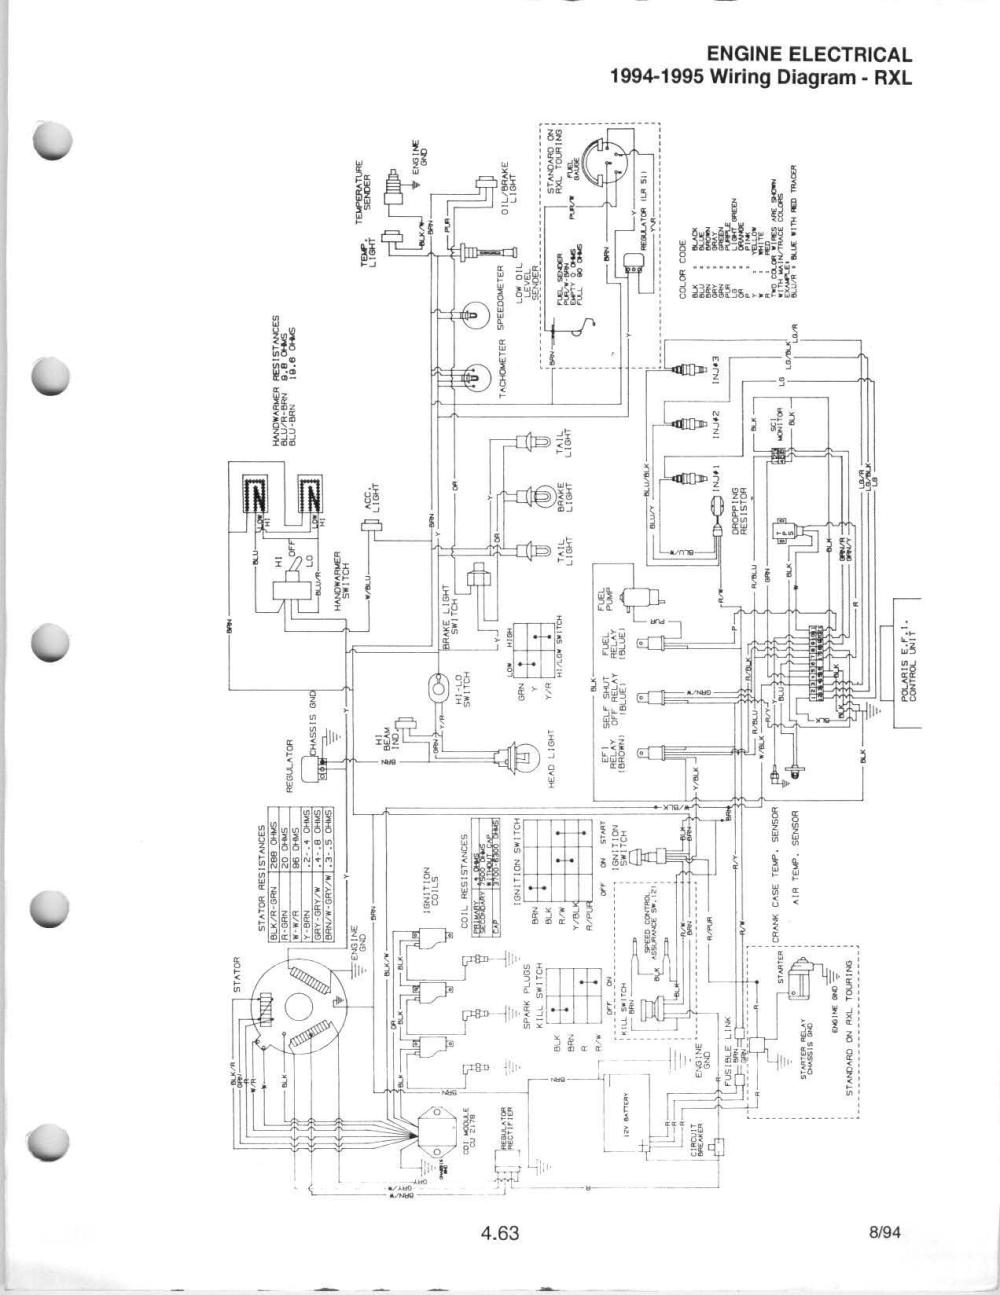 medium resolution of 1991 polaris wiring diagram everything wiring diagram wiring diagram for 1991 polaris rxl